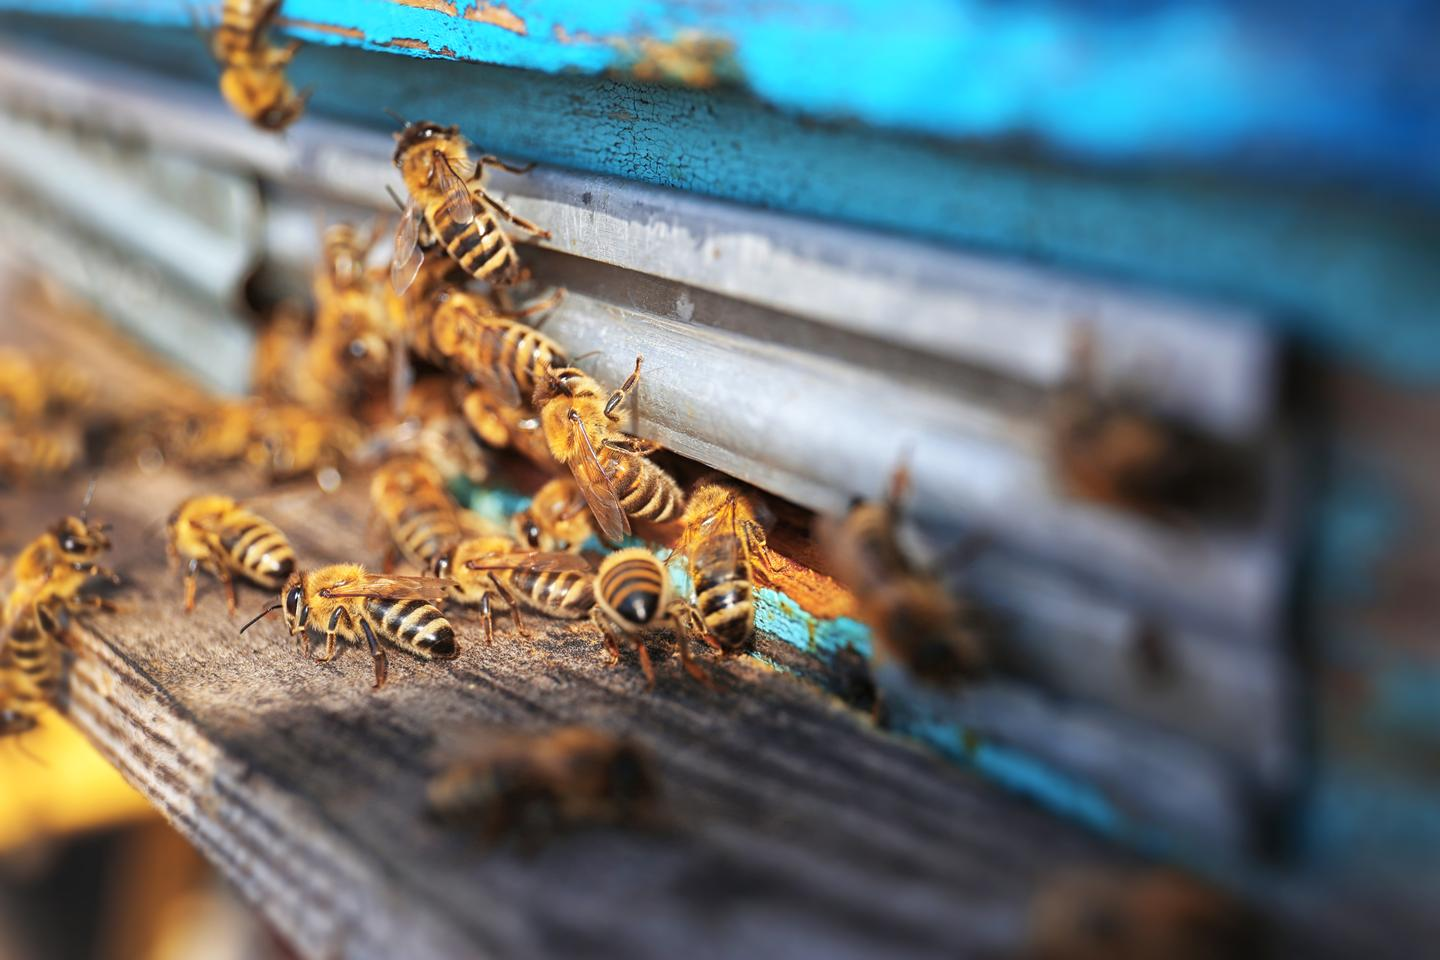 If high levels of pyrethroids are detected in a beehive's honey, authorities can check to see if farmers in the area are using excessive amounts of the pesticides on their crops